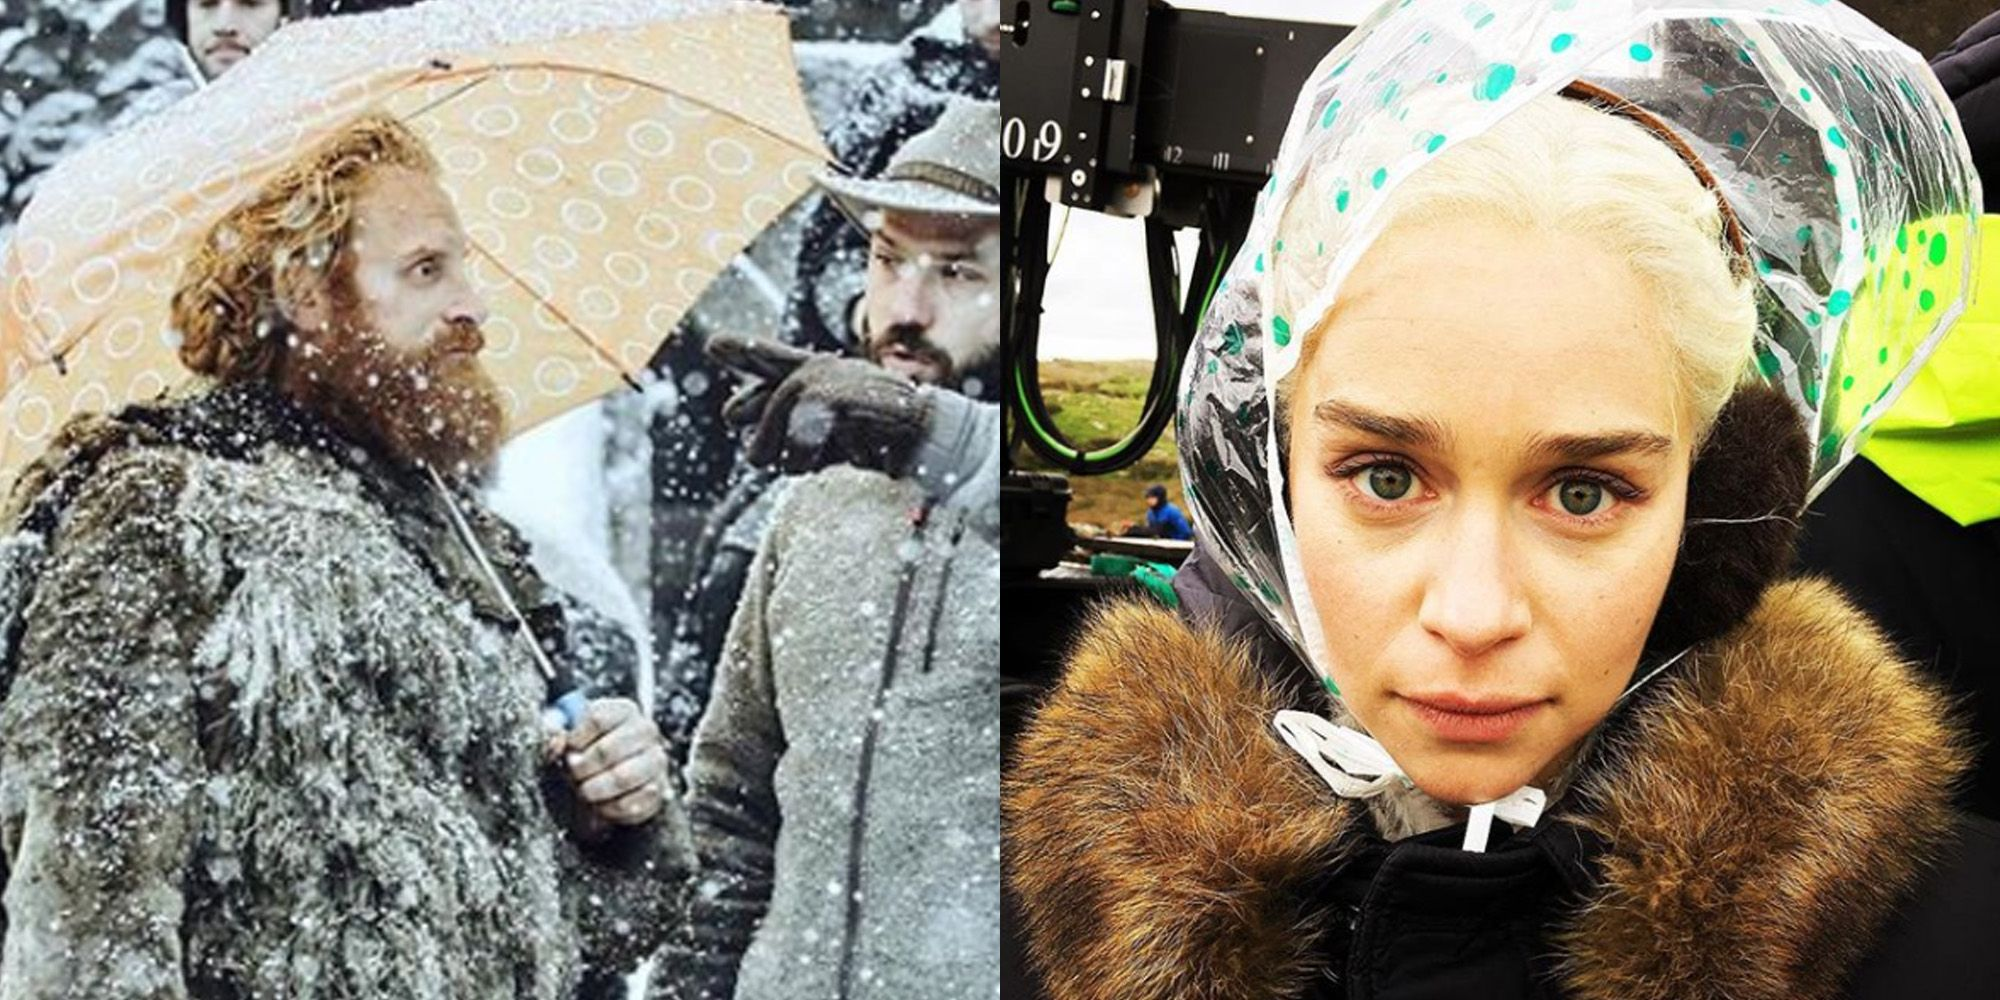 93 Behind-the-Scenes 'Game of Thrones' Pictures That Will Destroy the Magic for You